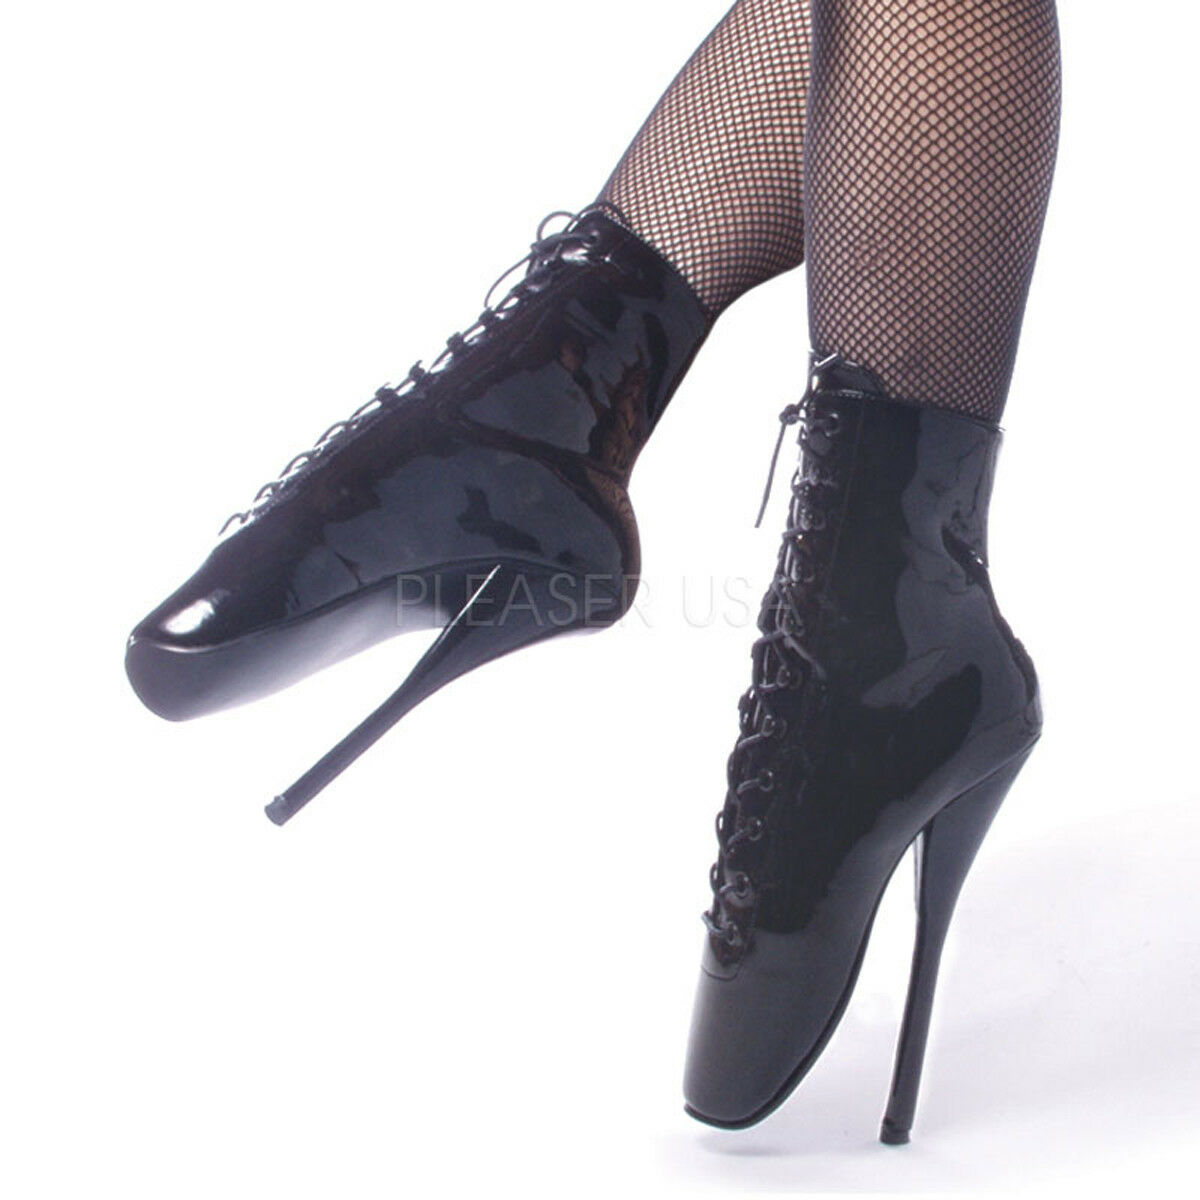 Devious BALLET-1020 Women's Single Soles Black Patent Stiletto Stiletto Stiletto Mid Calf Boots b6b8fa